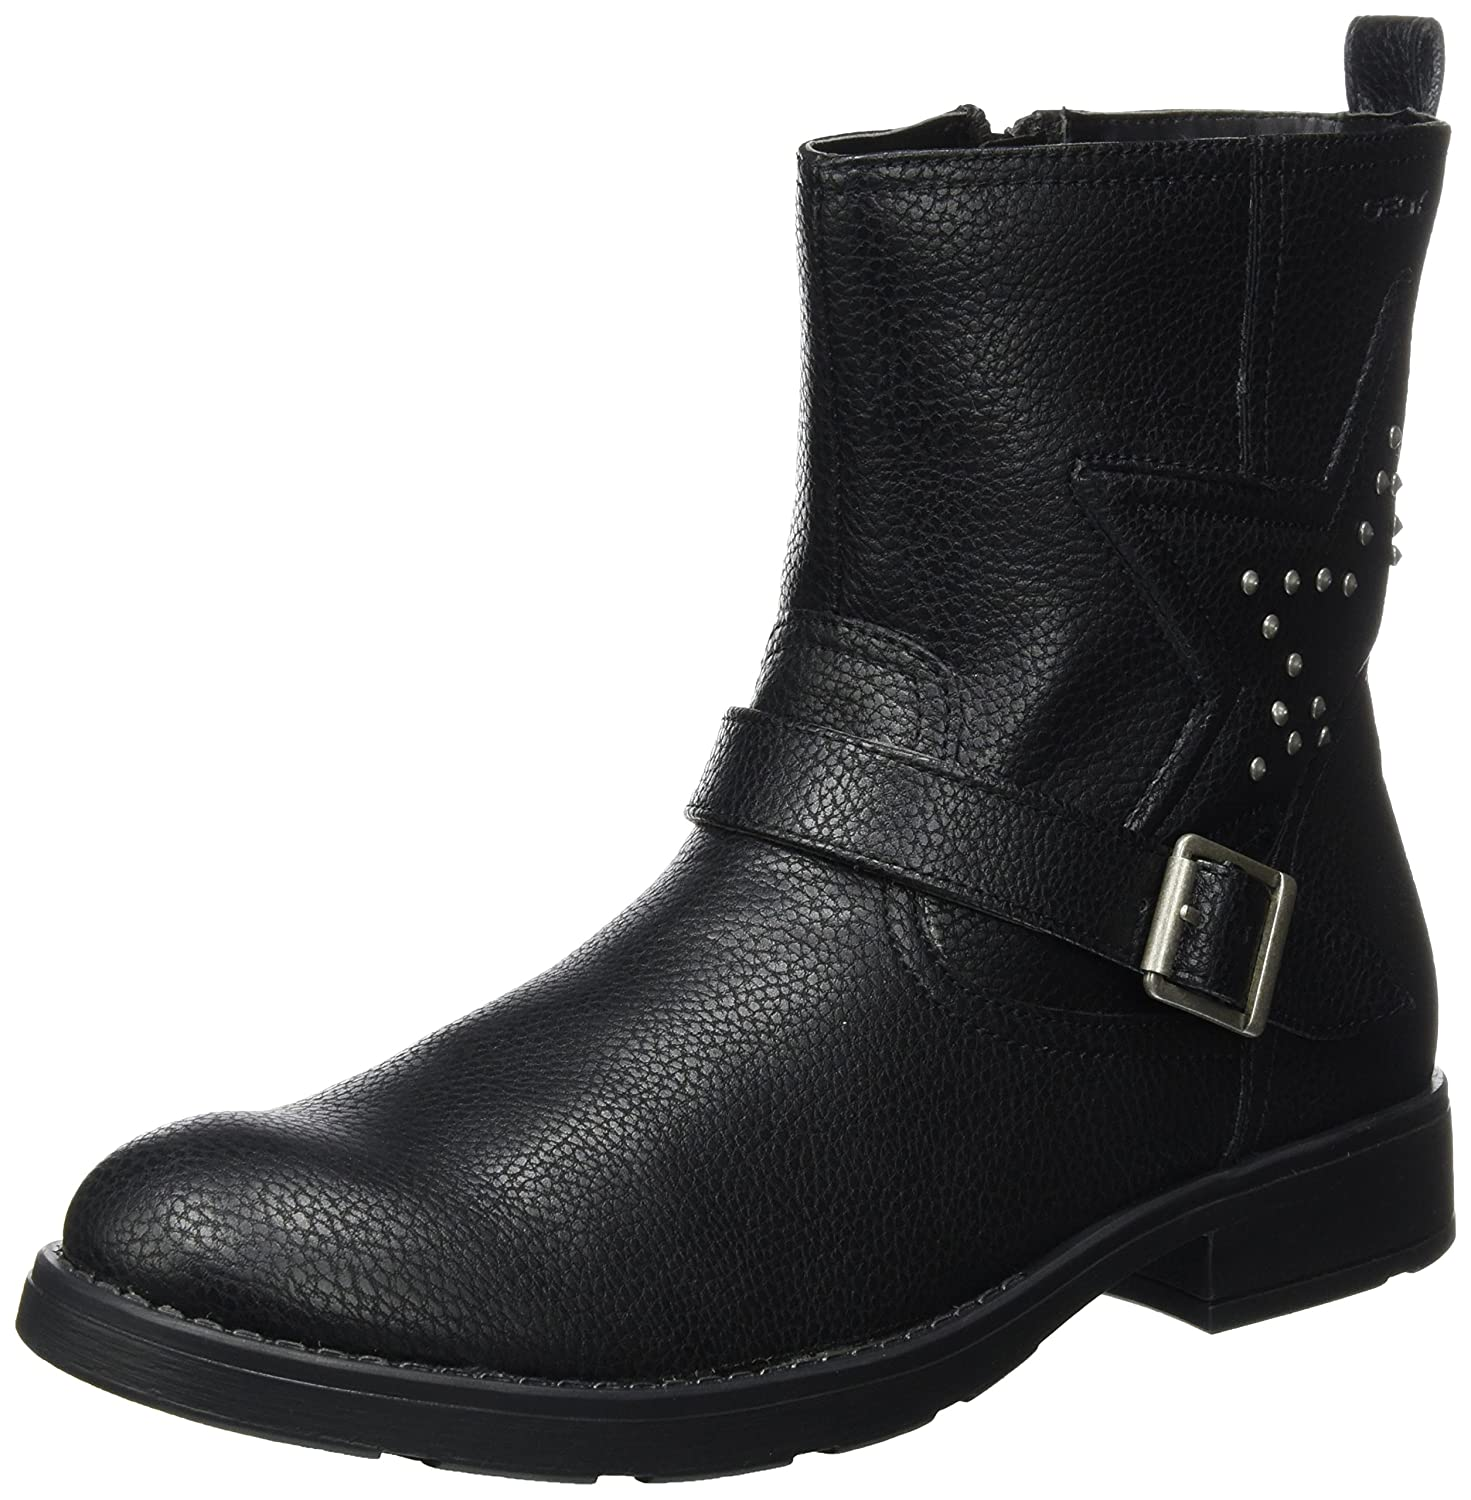 Geox Jr Sofia (Black) C, Bottes Motardes Jr Fille Sofia Noir (Black) 5324786 - automaticcouplings.space